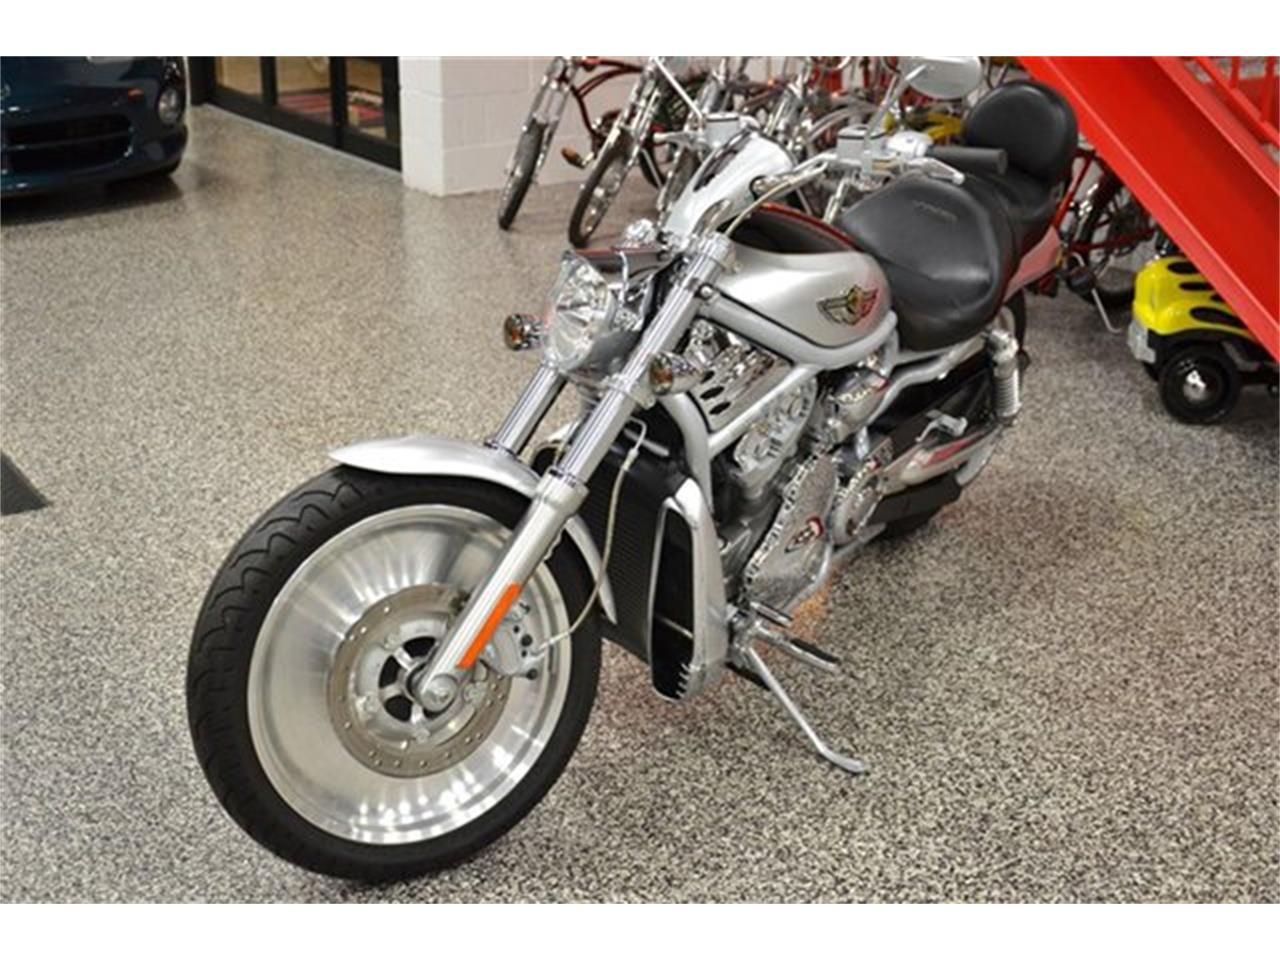 2003 Harley-Davidson VRSC for sale in Plainfield, IL – photo 21